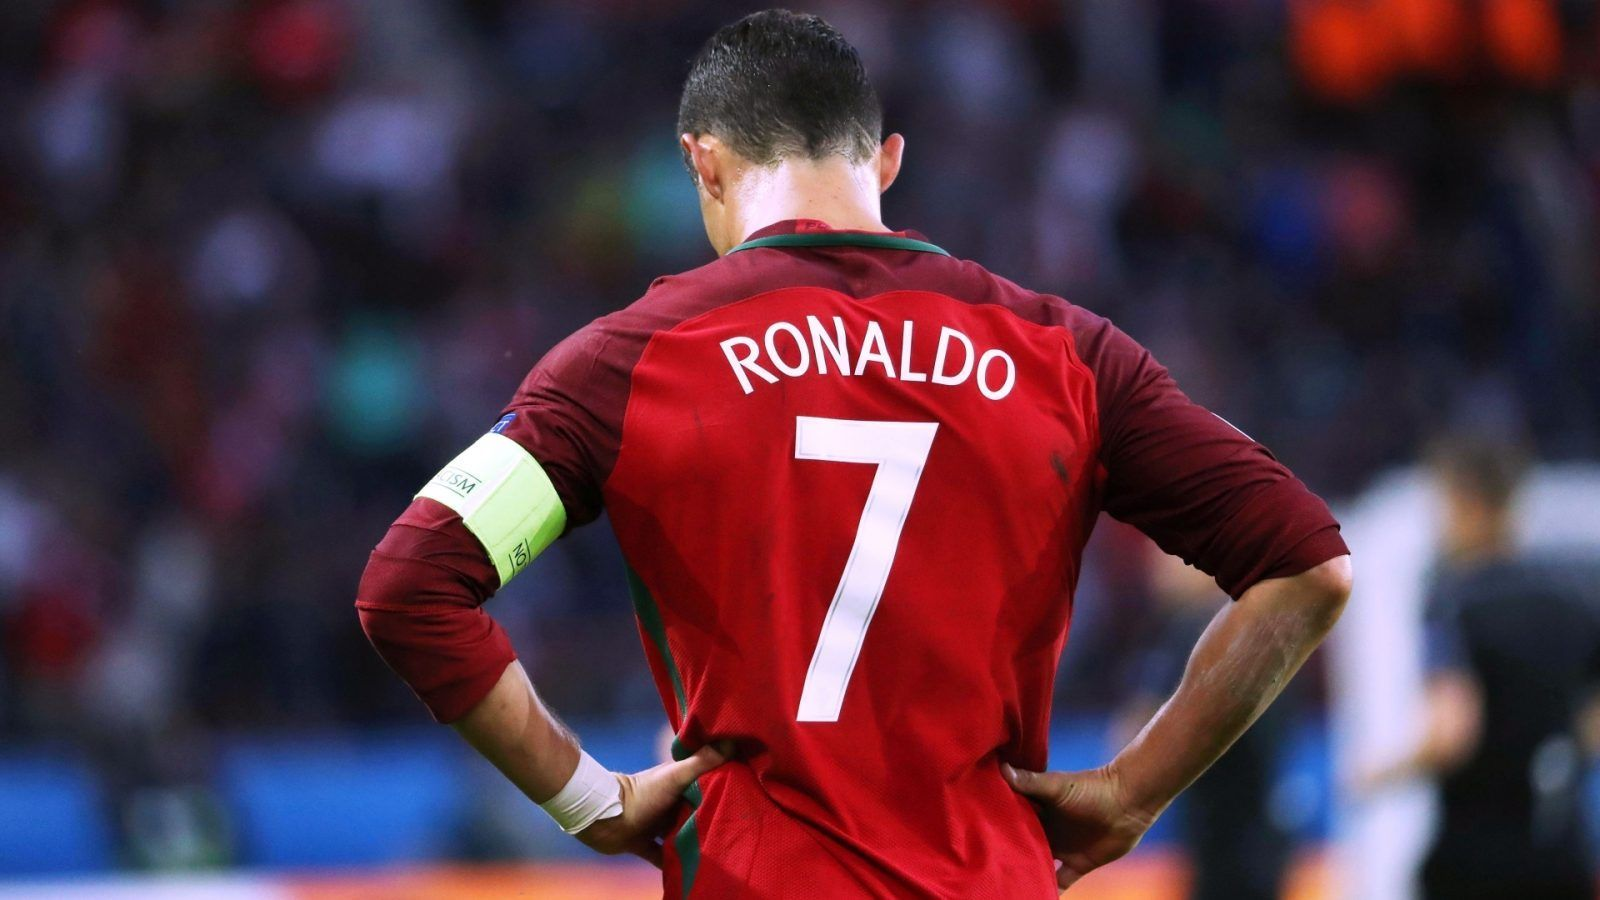 newest 48d9c 5382d Cristiano Ronaldo pictures with cr7 jersey backside image ...